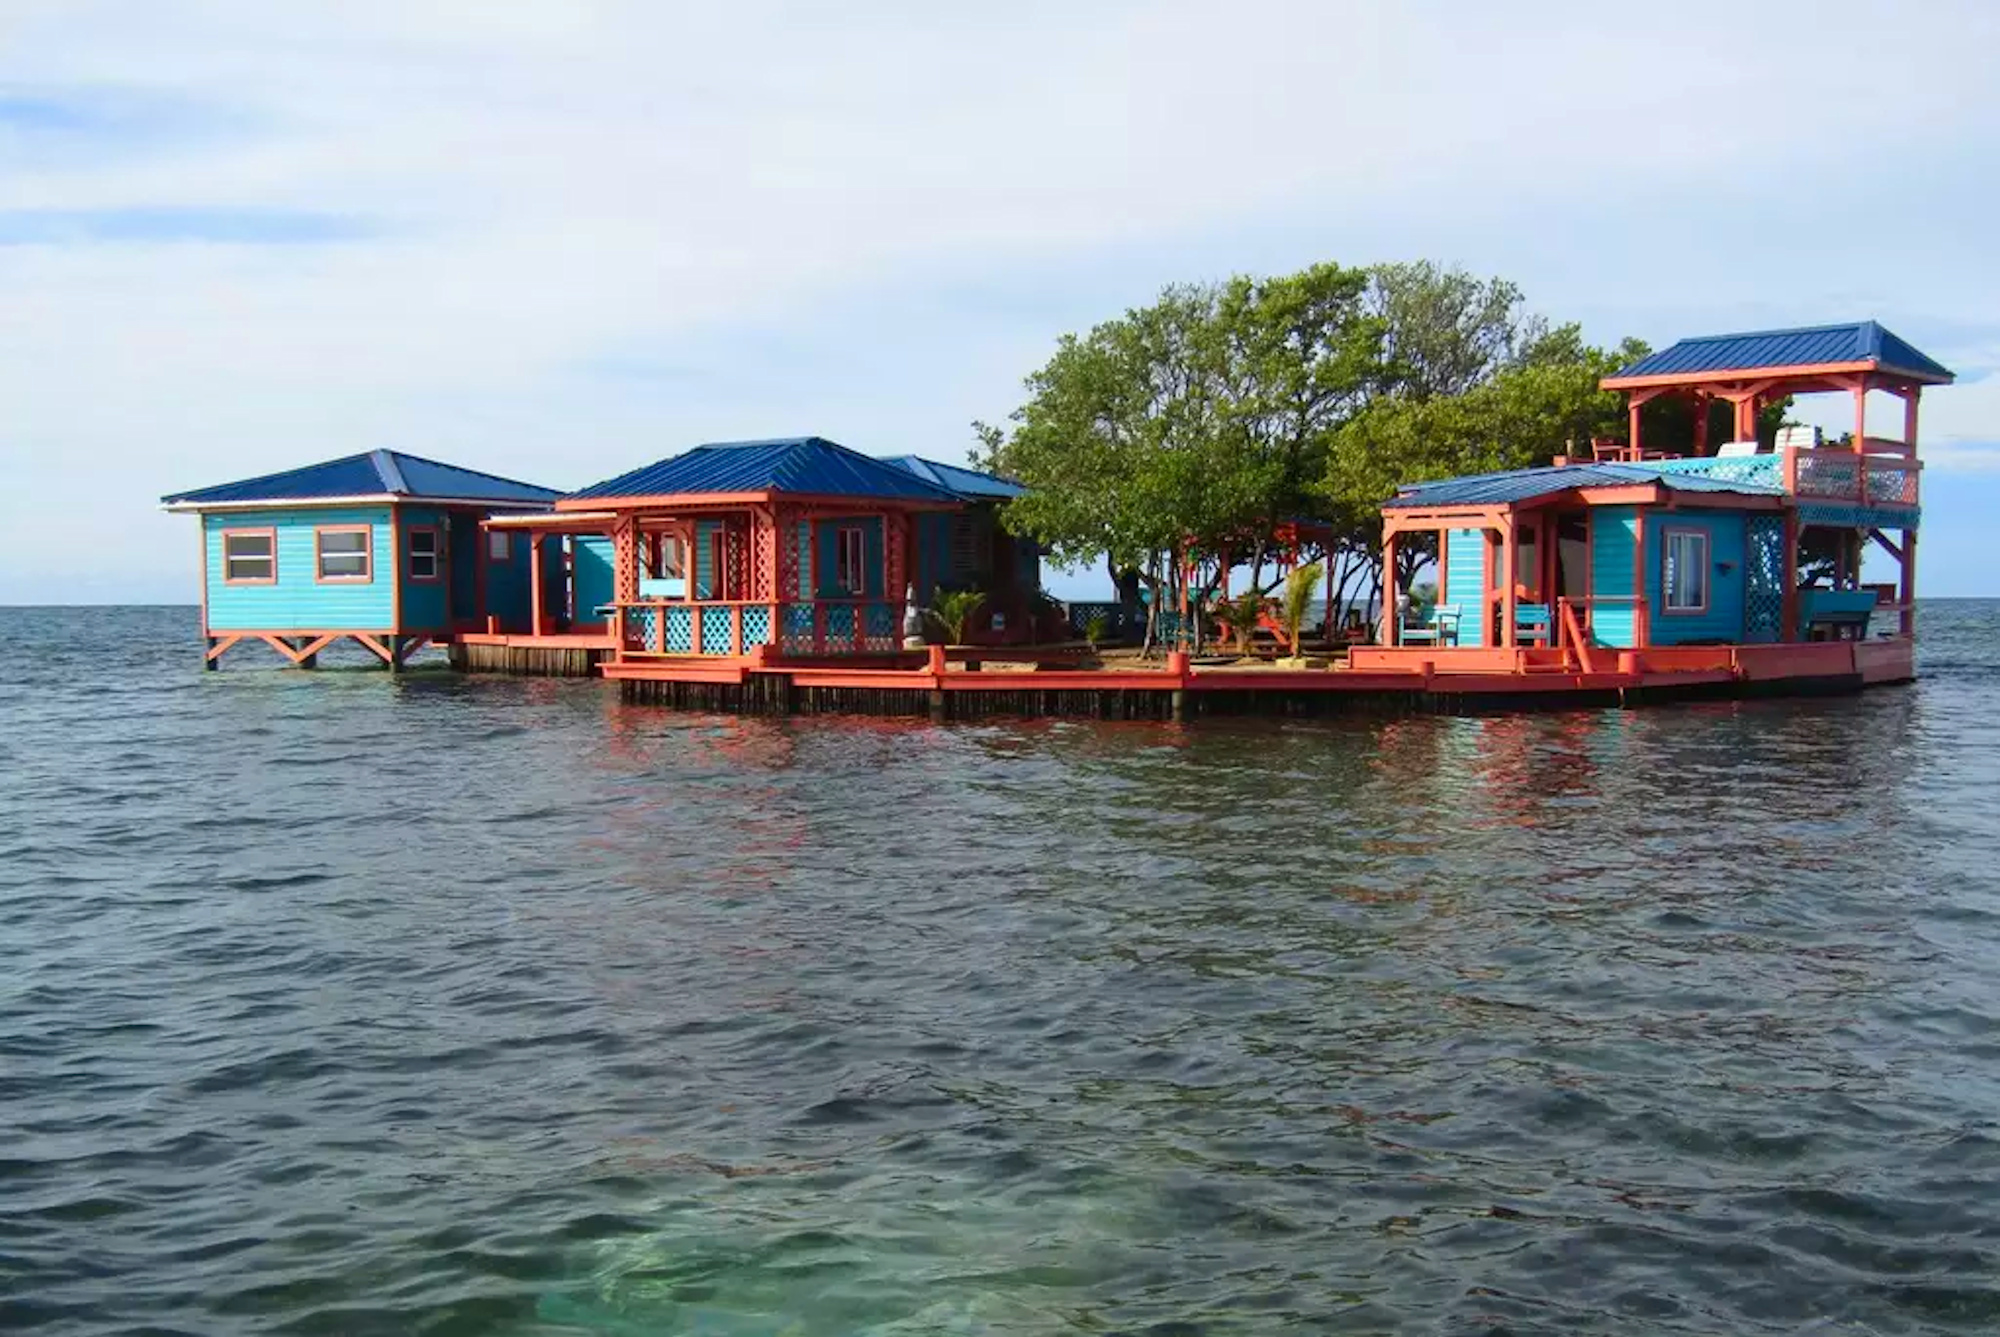 8 private island rentals you might actually be able to afford